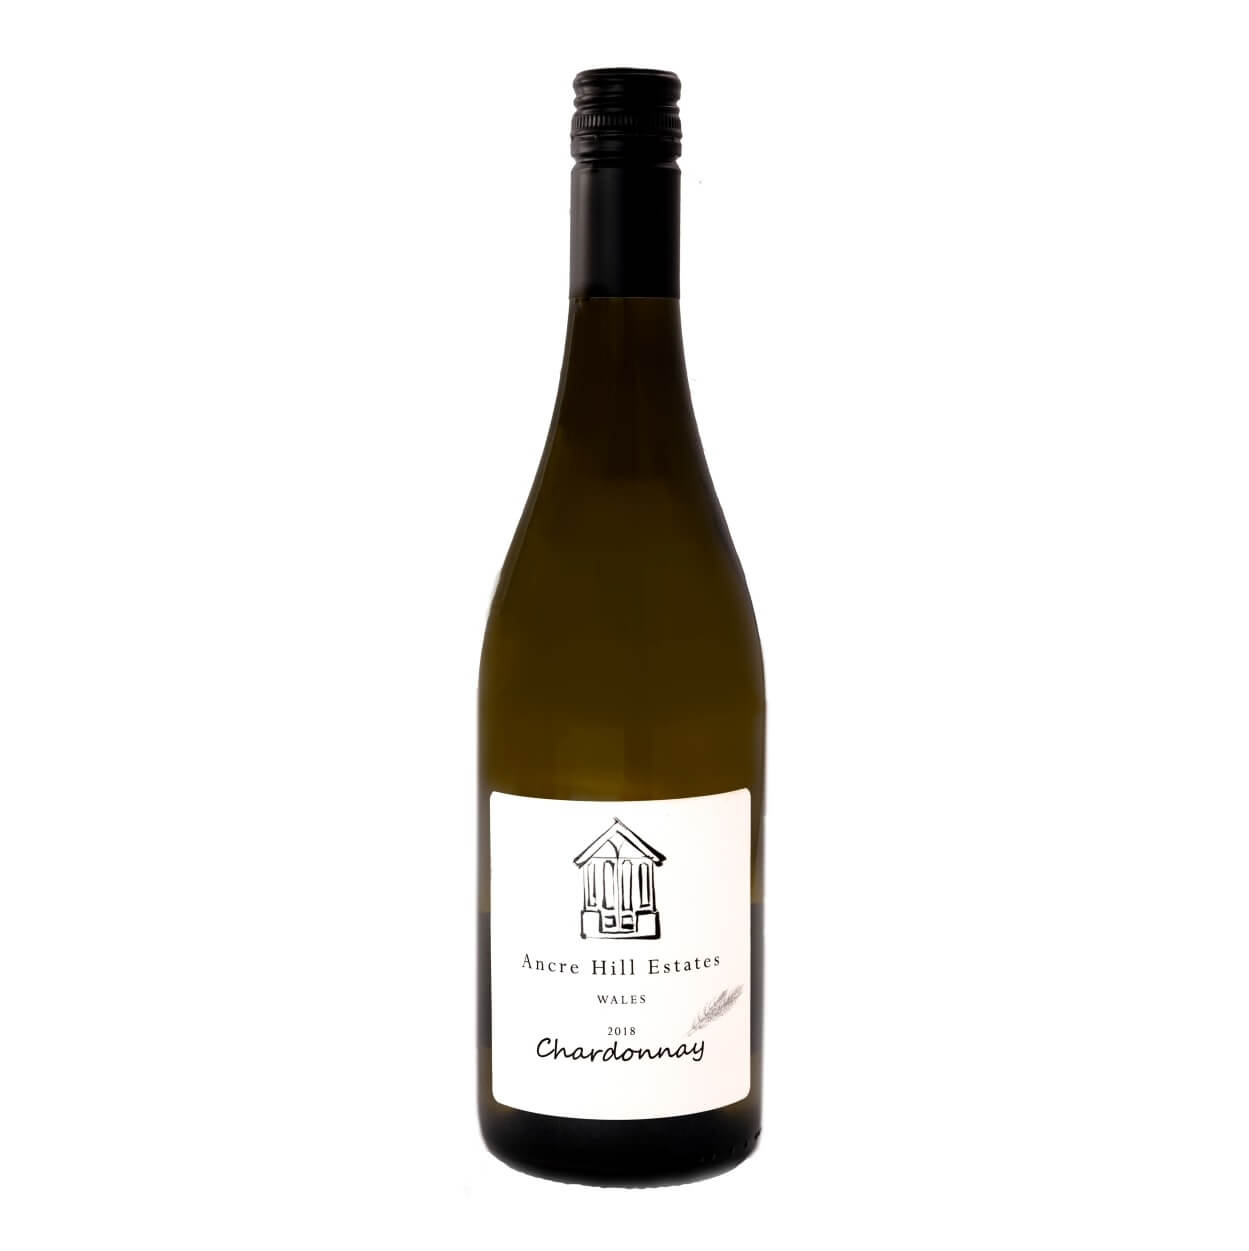 Ancre Hill Chardonnay 2018 English White Wine